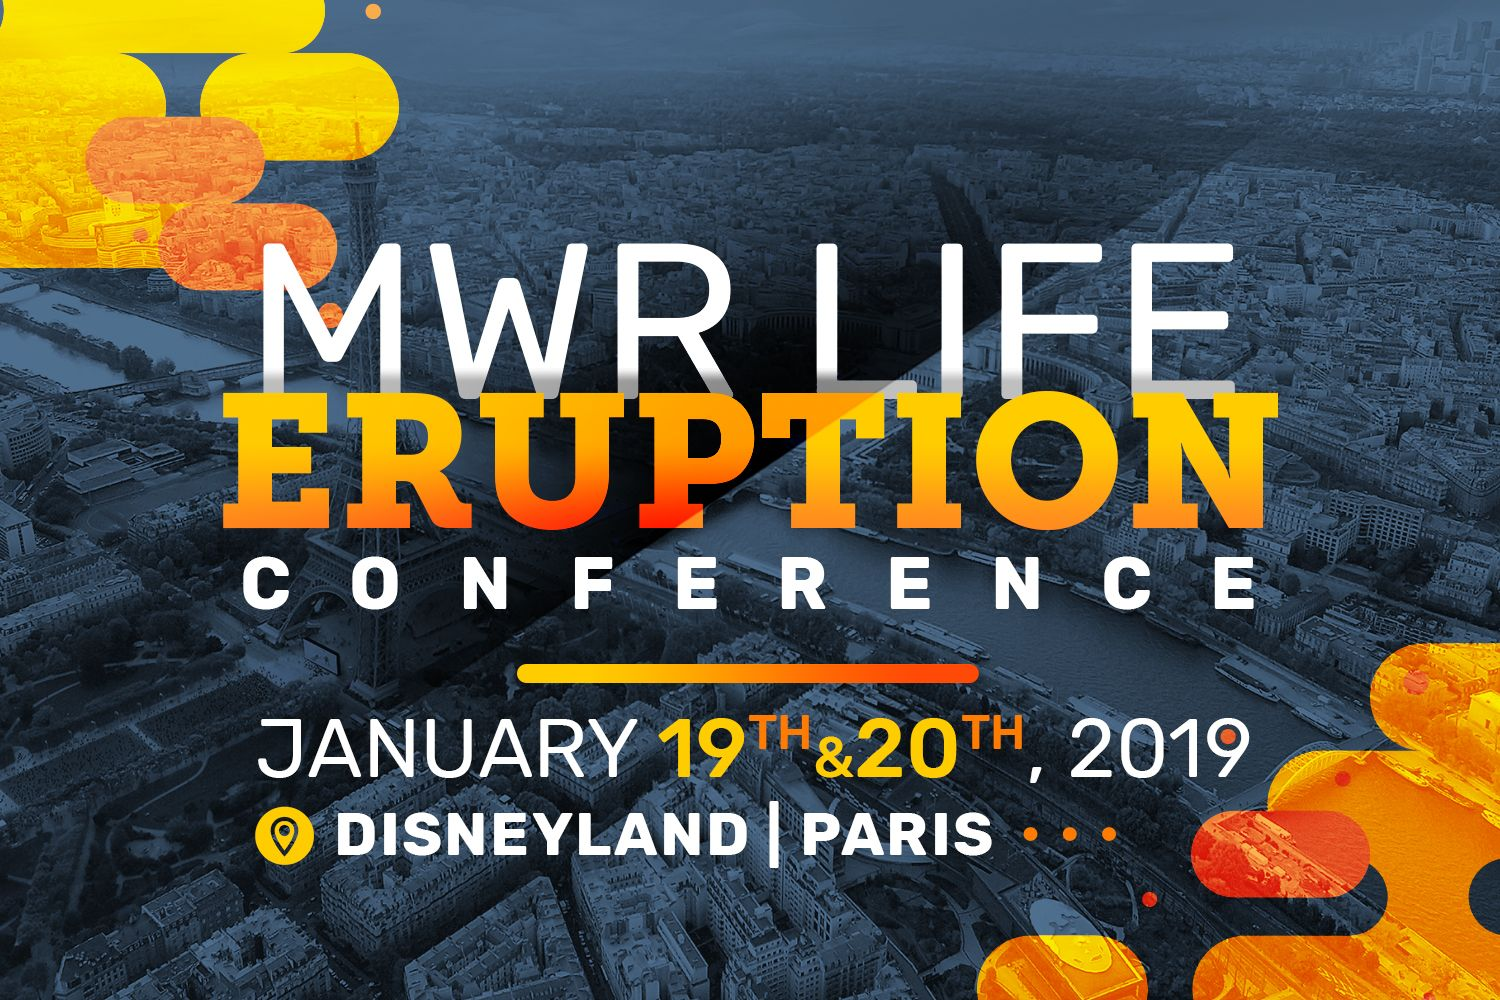 Ring in the New Year with MWR Life at the Eruption